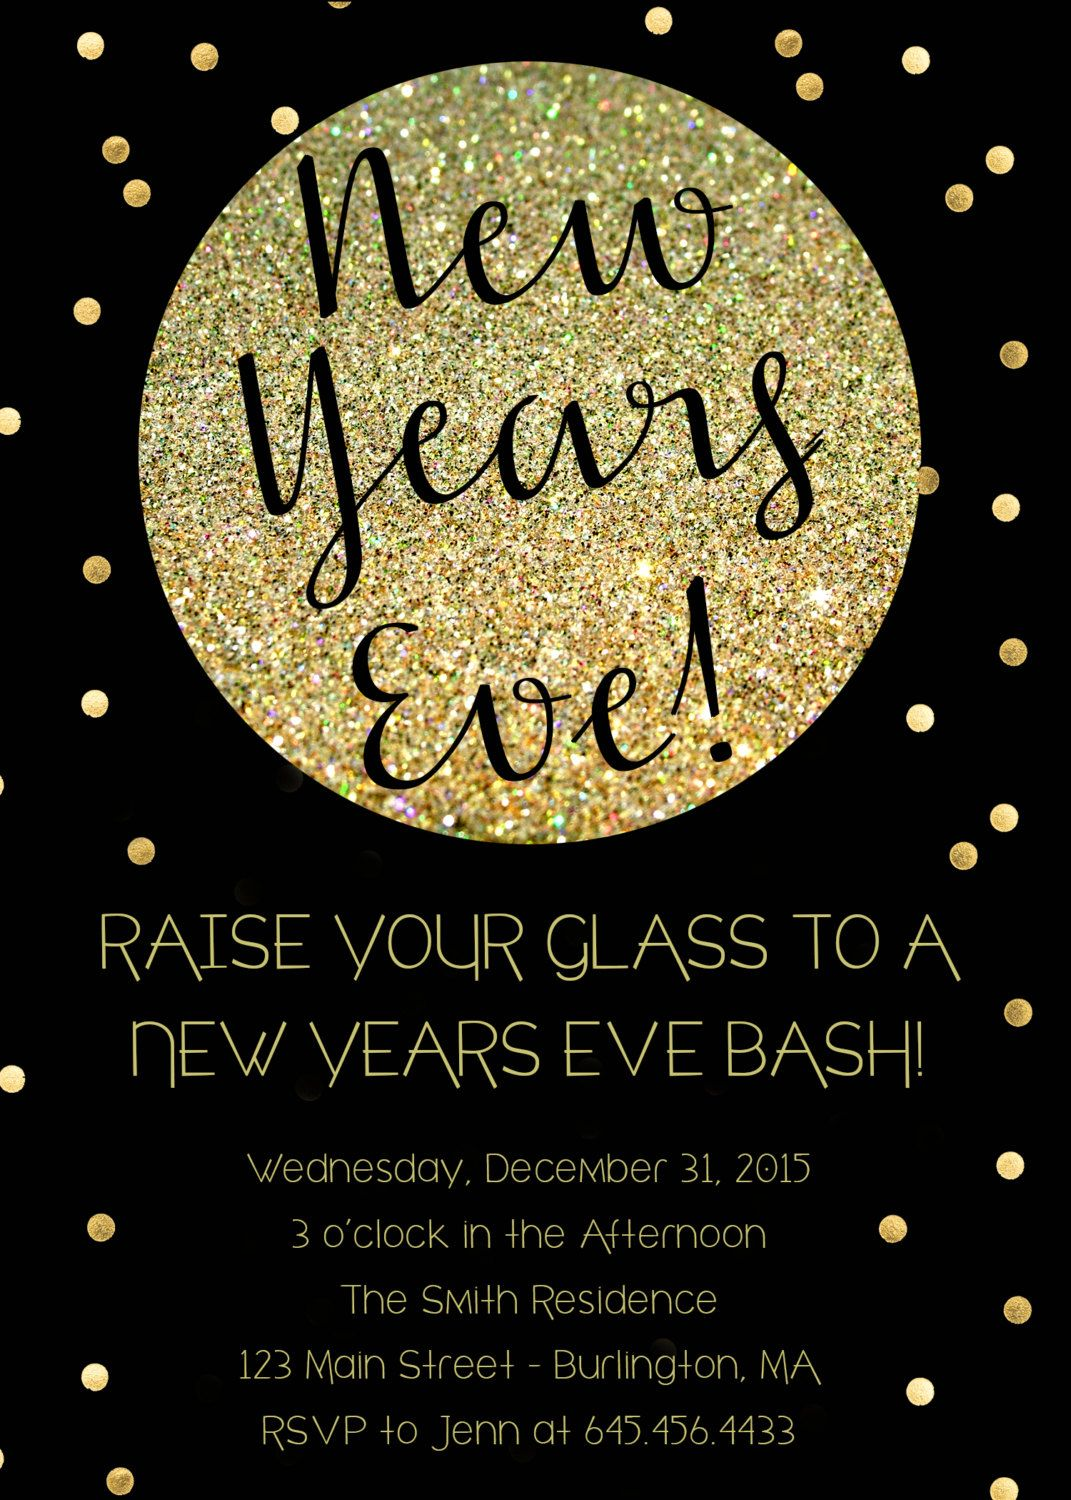 New Years Eve Party Invitation In Black And Gold Glitter Printable New Years Eve Invitations New Year S Eve Party Themes New Years Eve